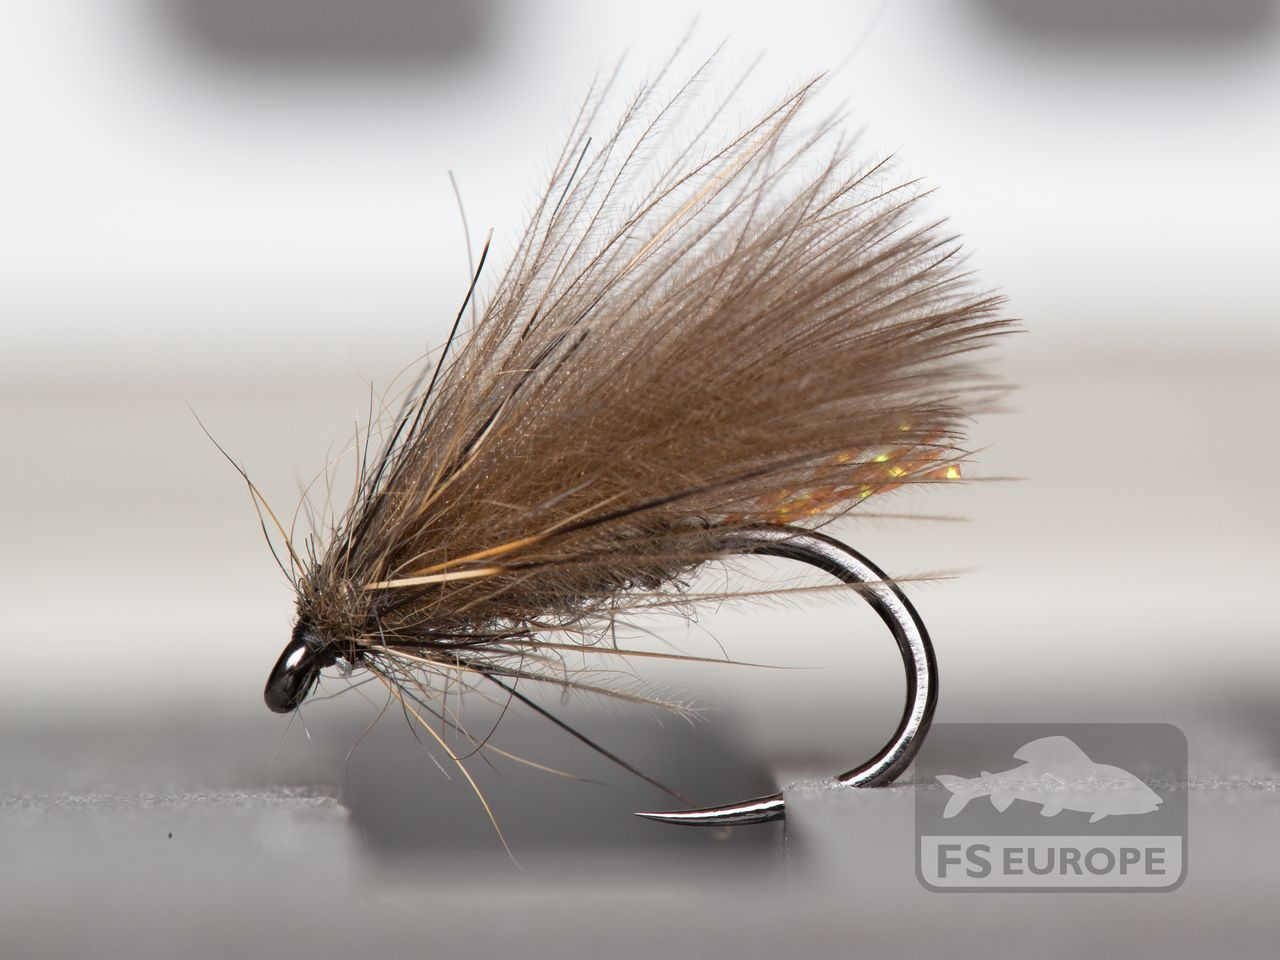 3 x YELLOW SEDGE HOG DRY TROUT FLIES size 10,12 available